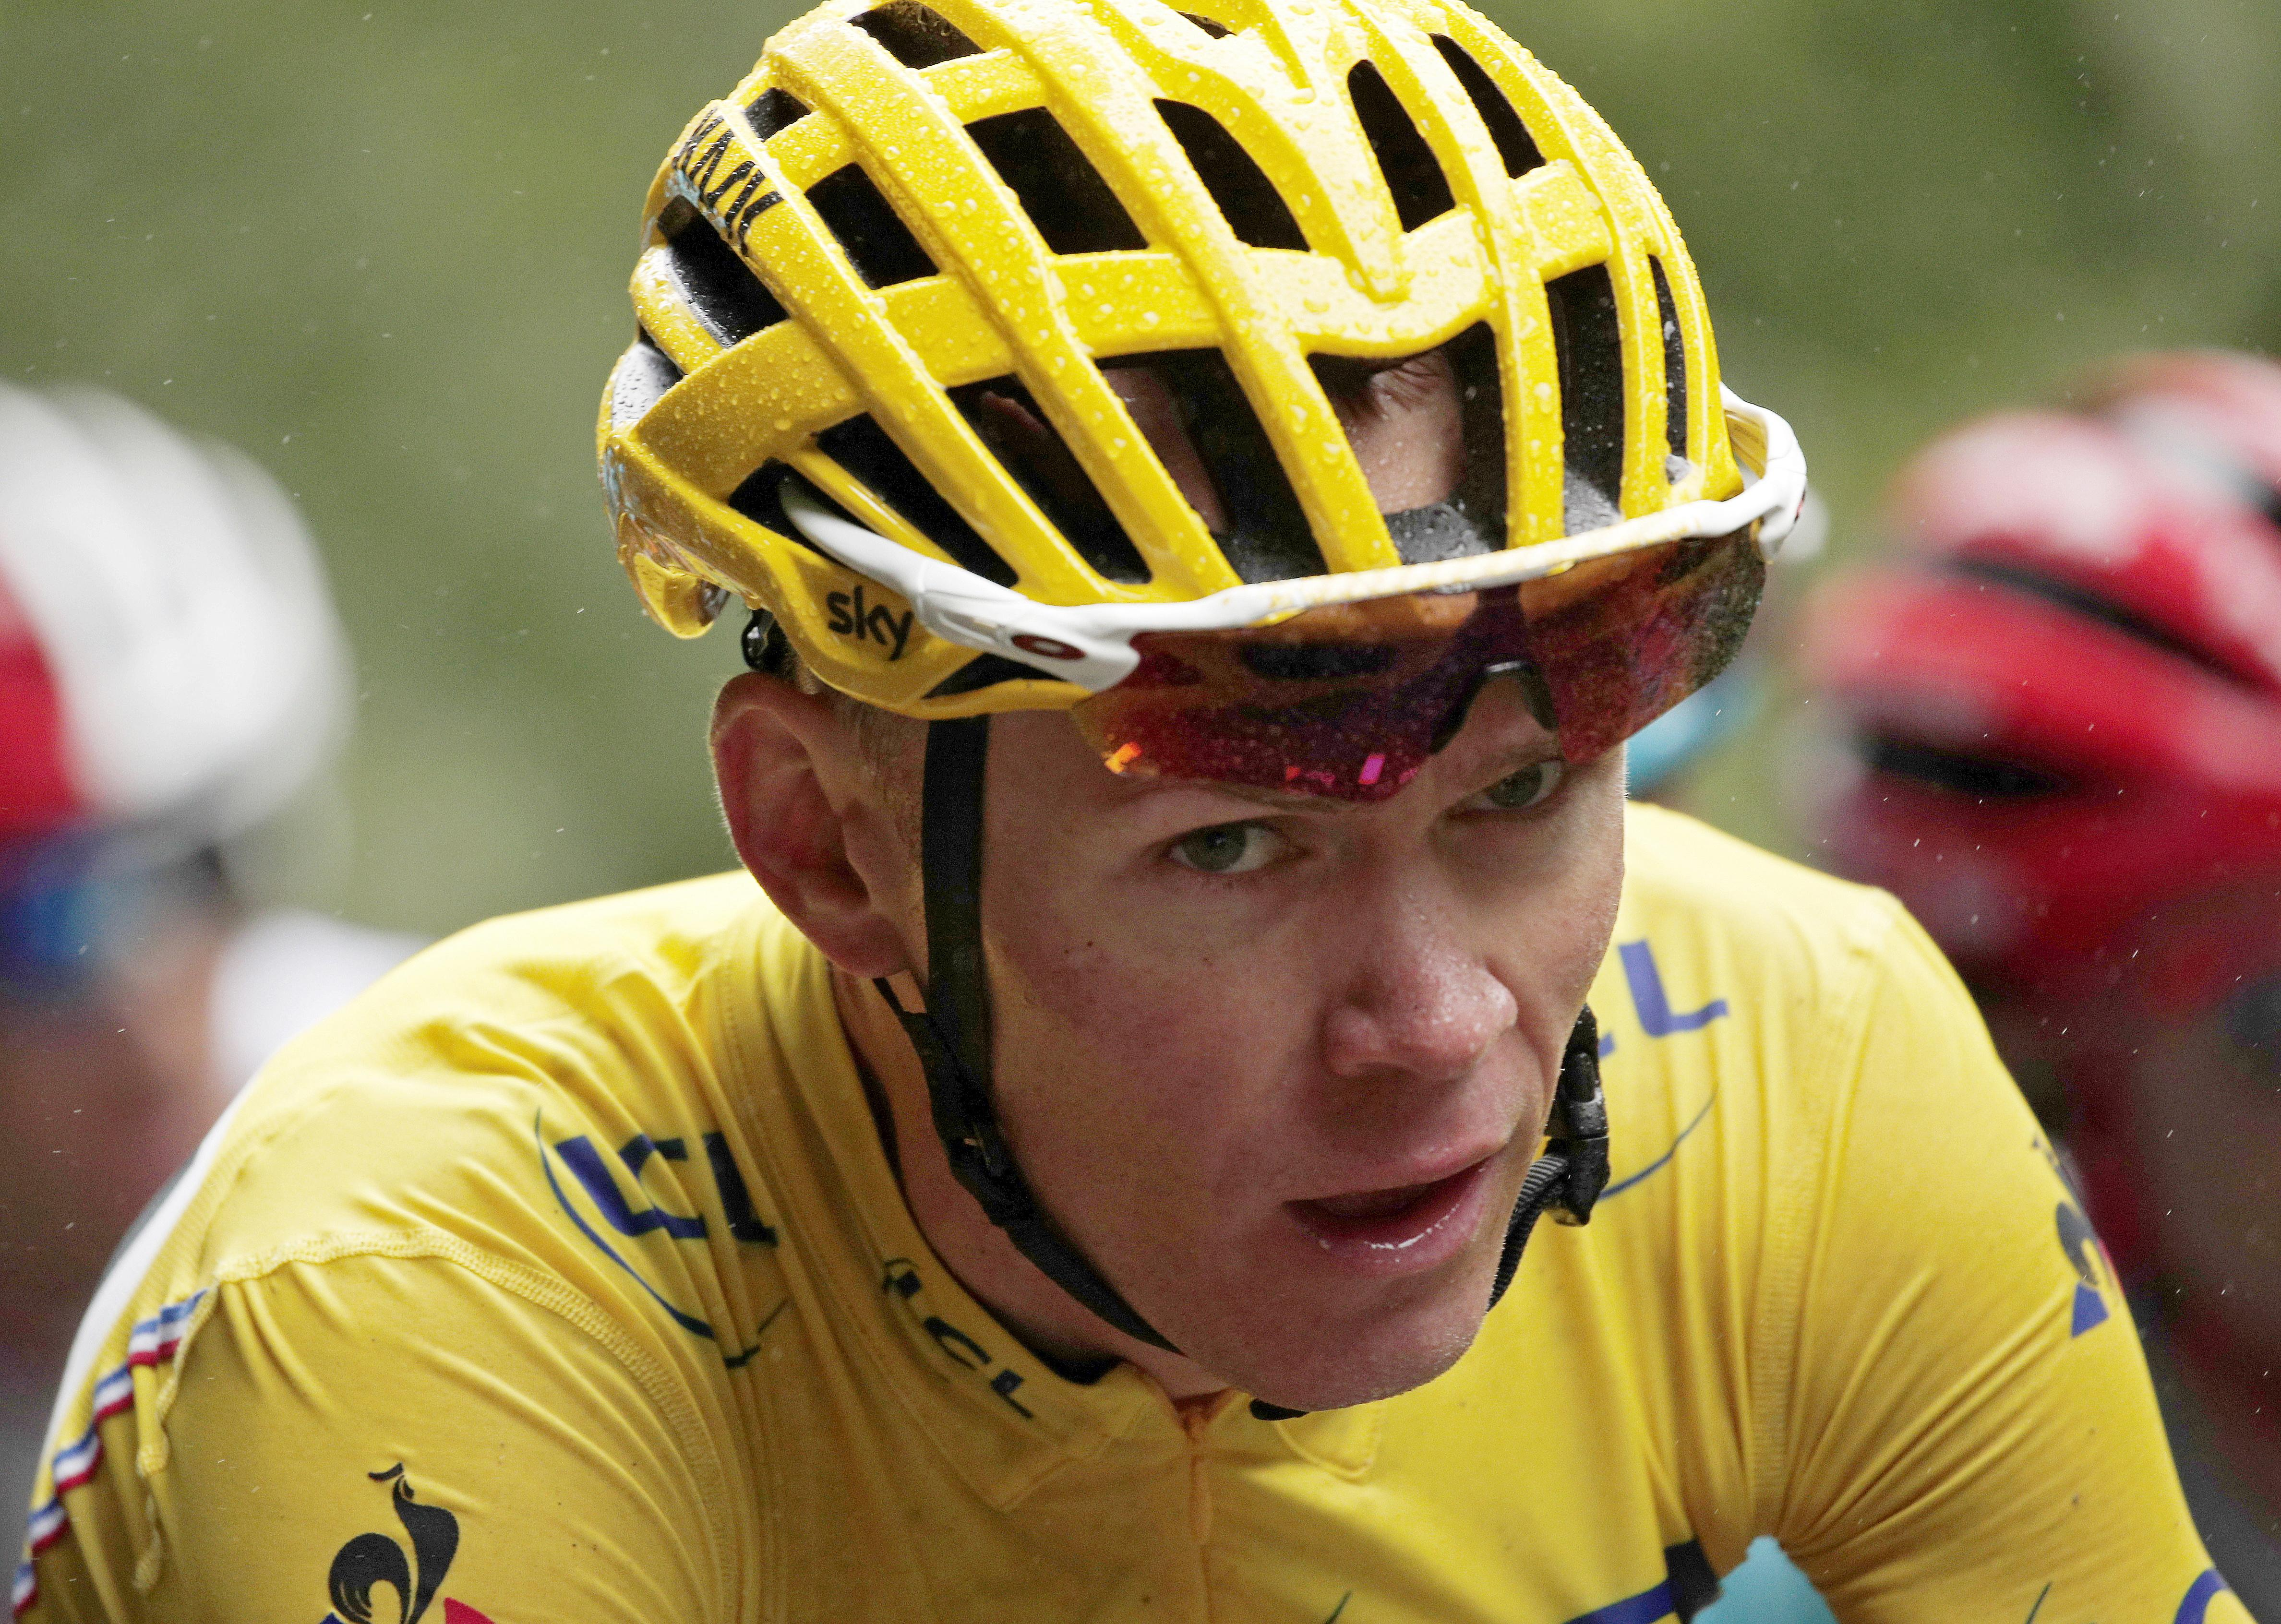 Chris Froome has been given reprieve over his adverse analytical finding for salbutamol